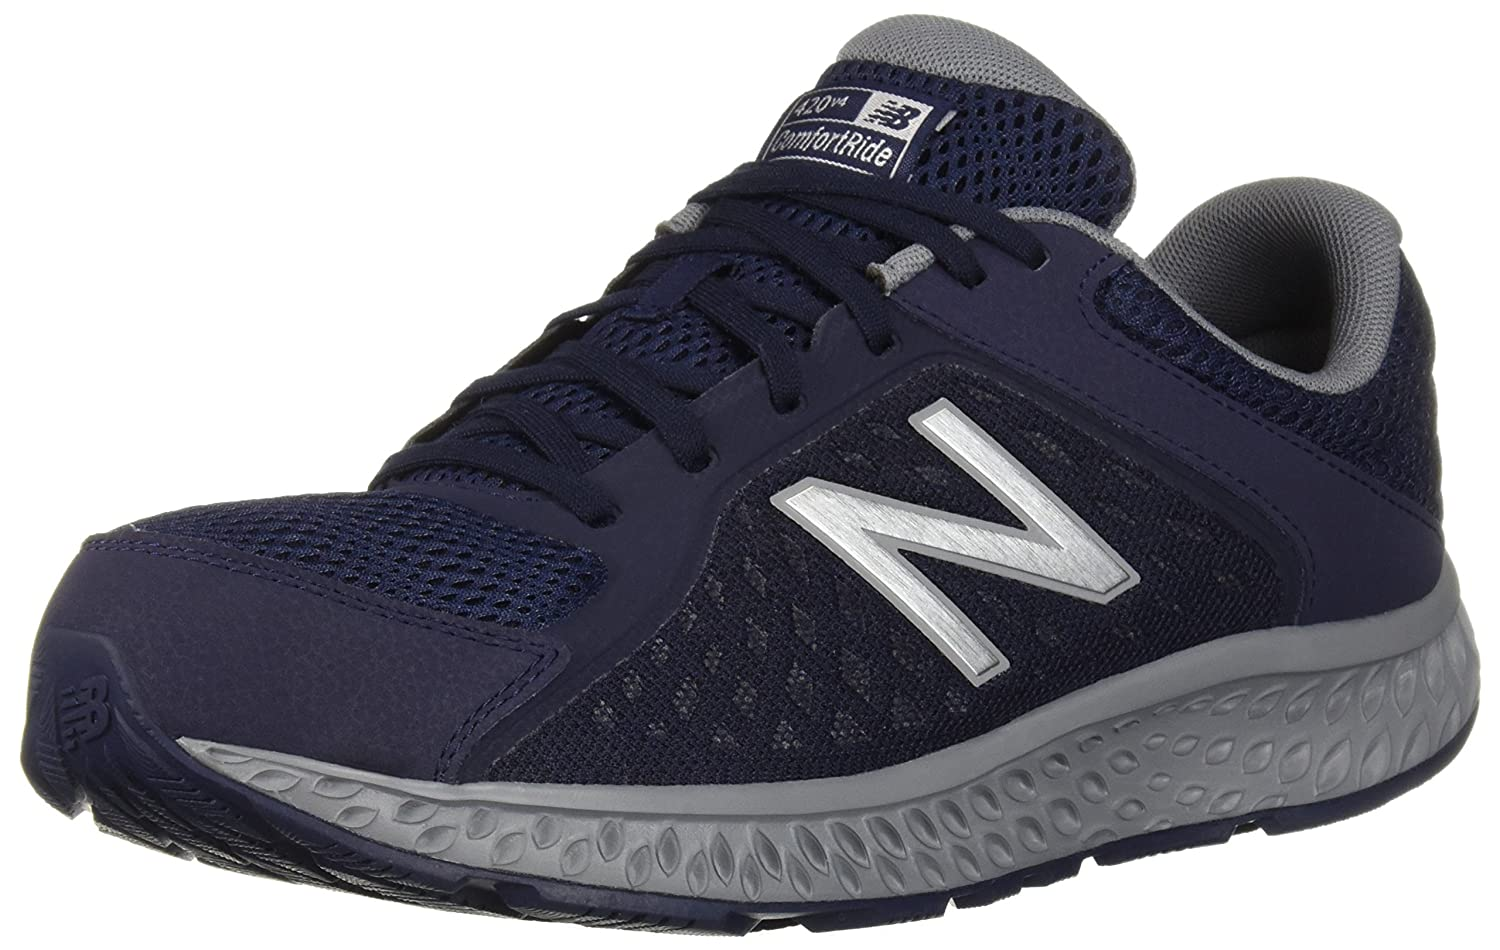 New Balance Men s M420v4 Running Shoes  Amazon.co.uk  Shoes   Bags 8a08924a4